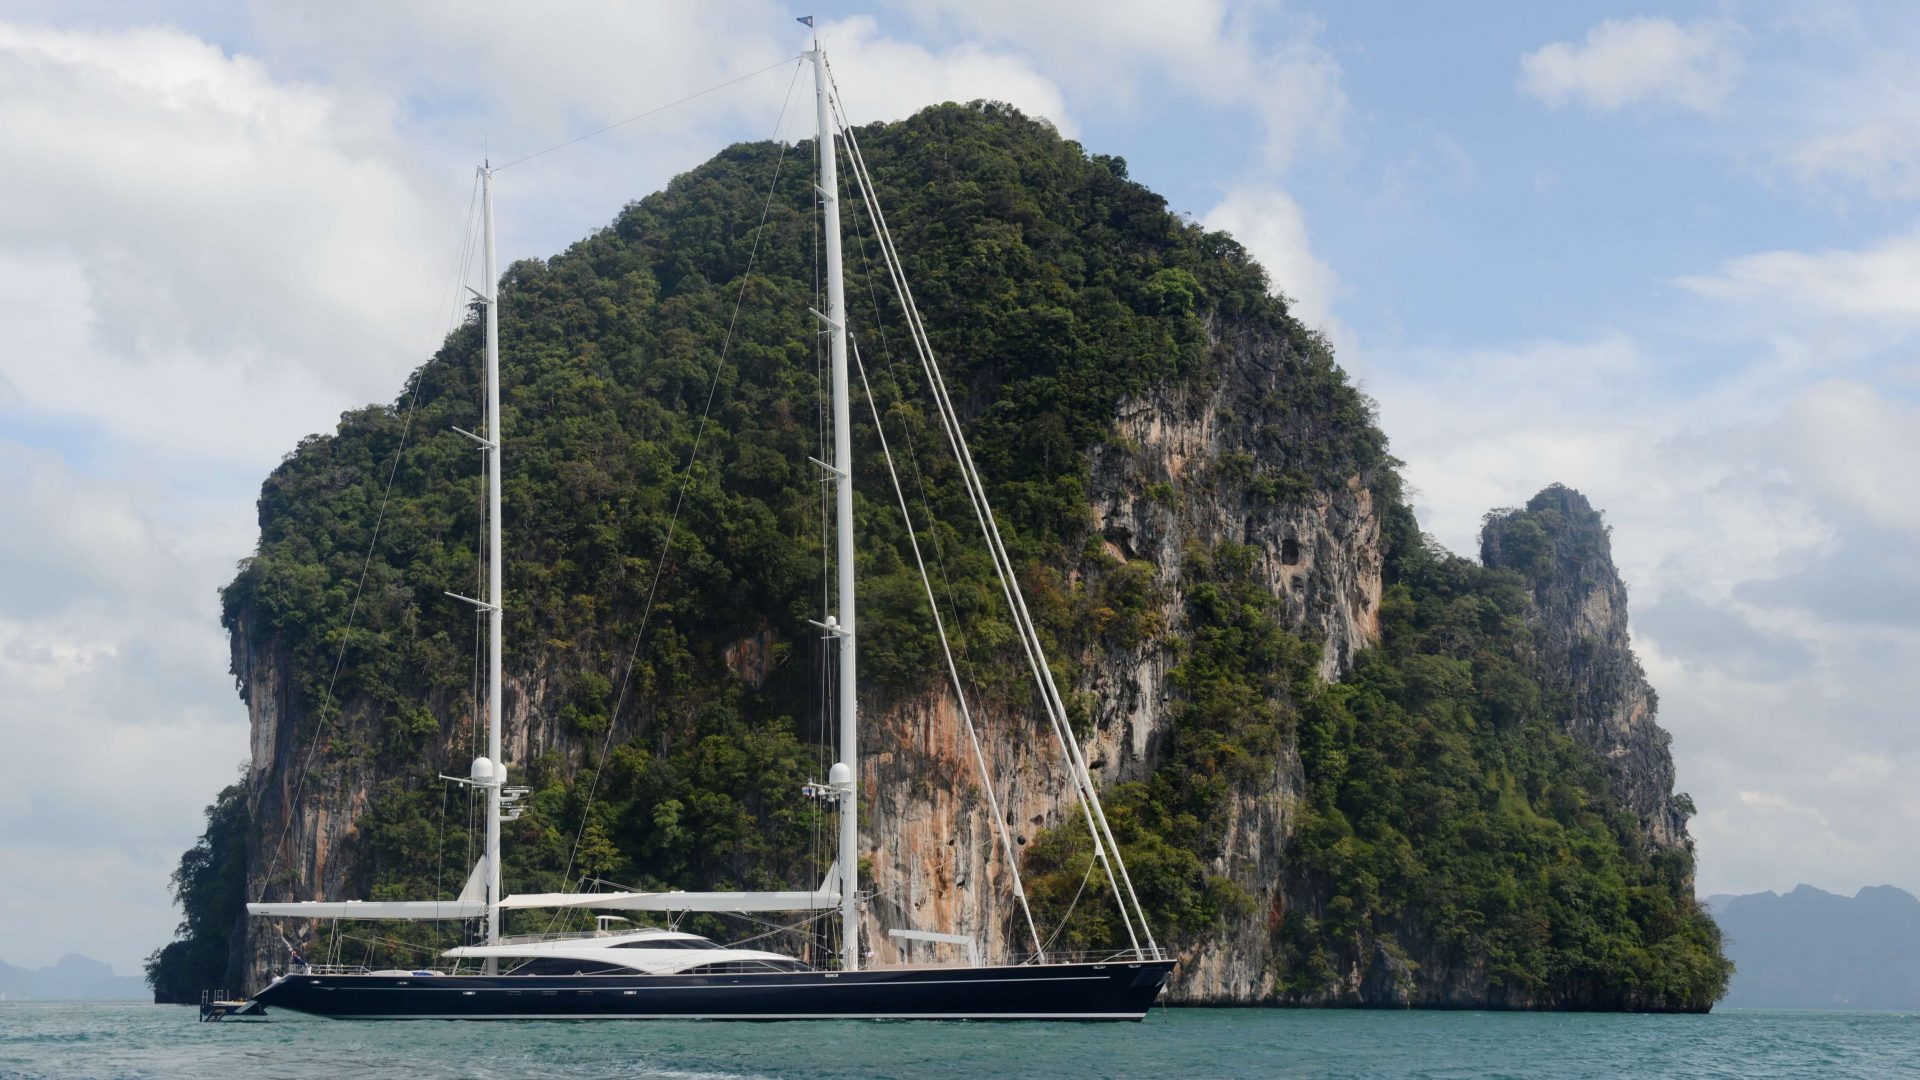 Royal Huisman - photo by owner TWIZZLE at anchor in front of limestone rock Asia c